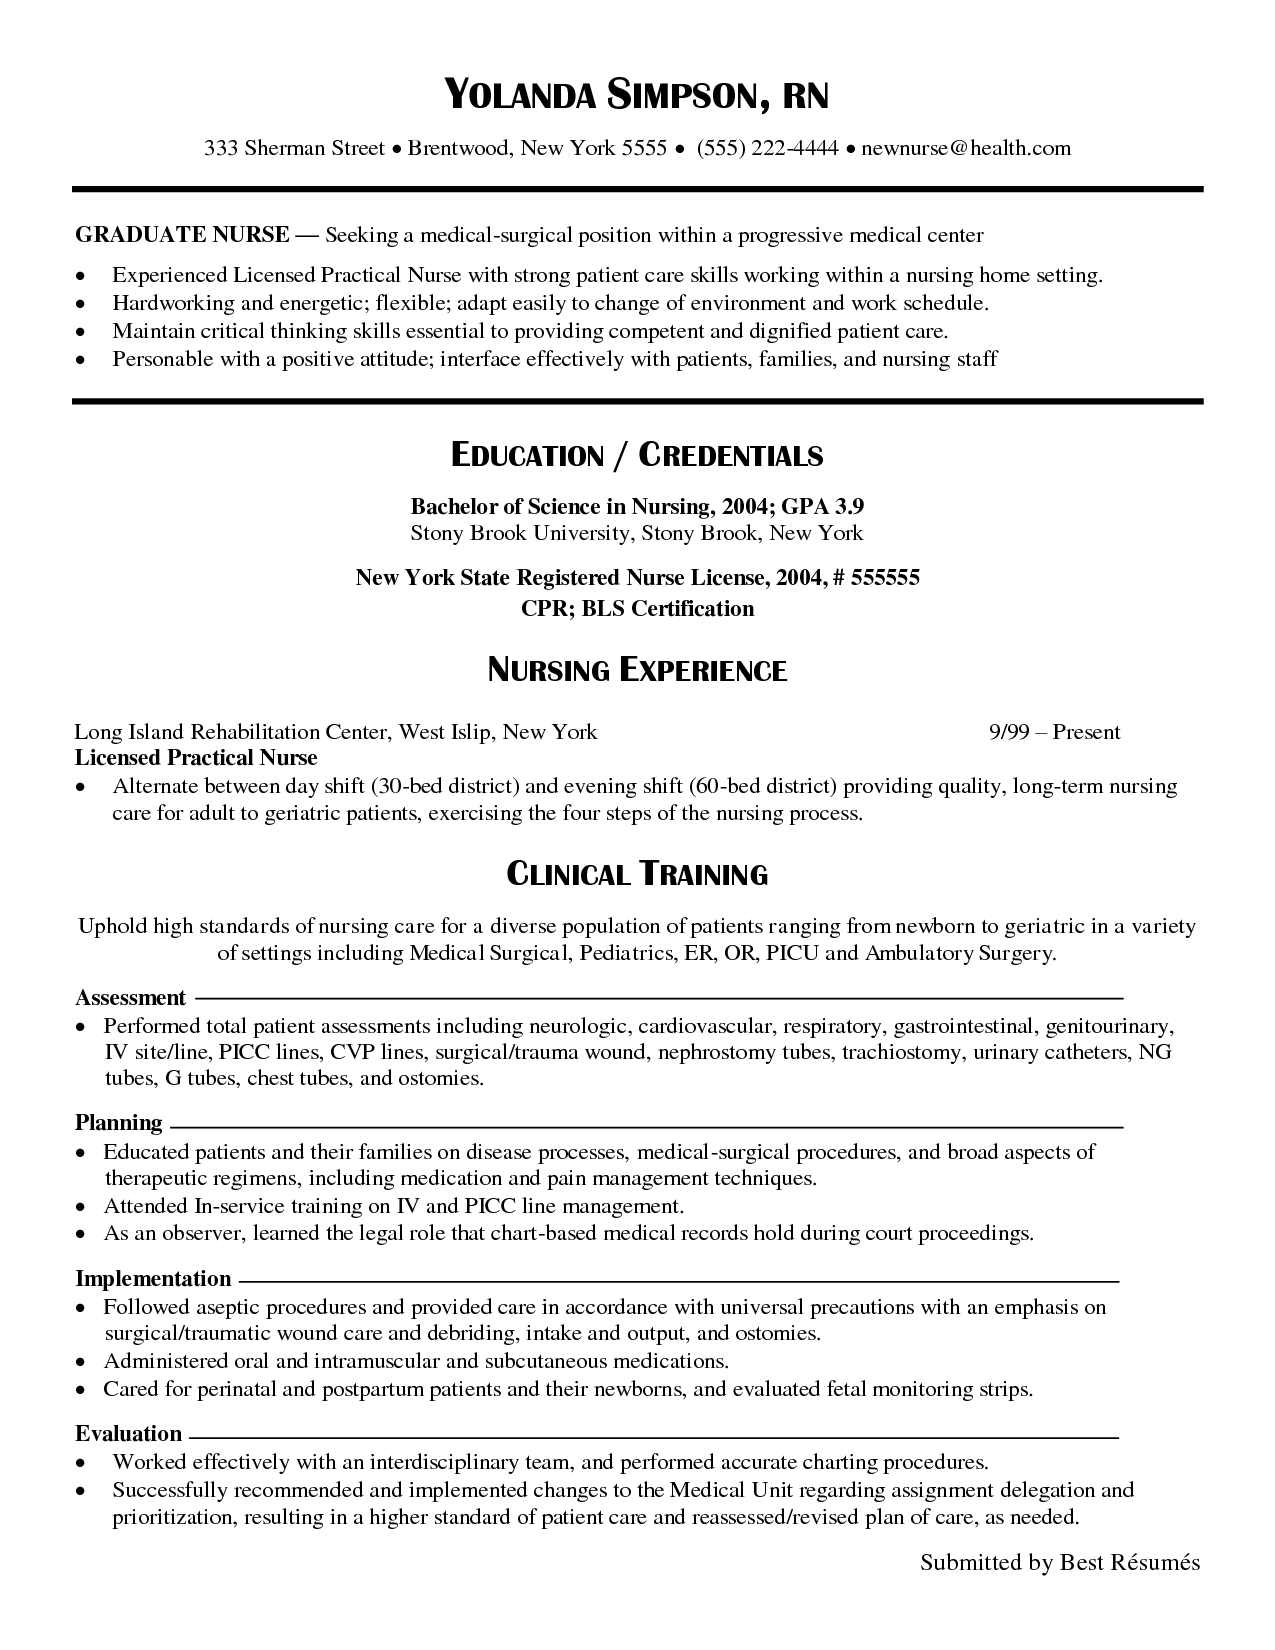 Nursing Resumes That Stand Out Clinical Experience On Nursing Resume Google Search